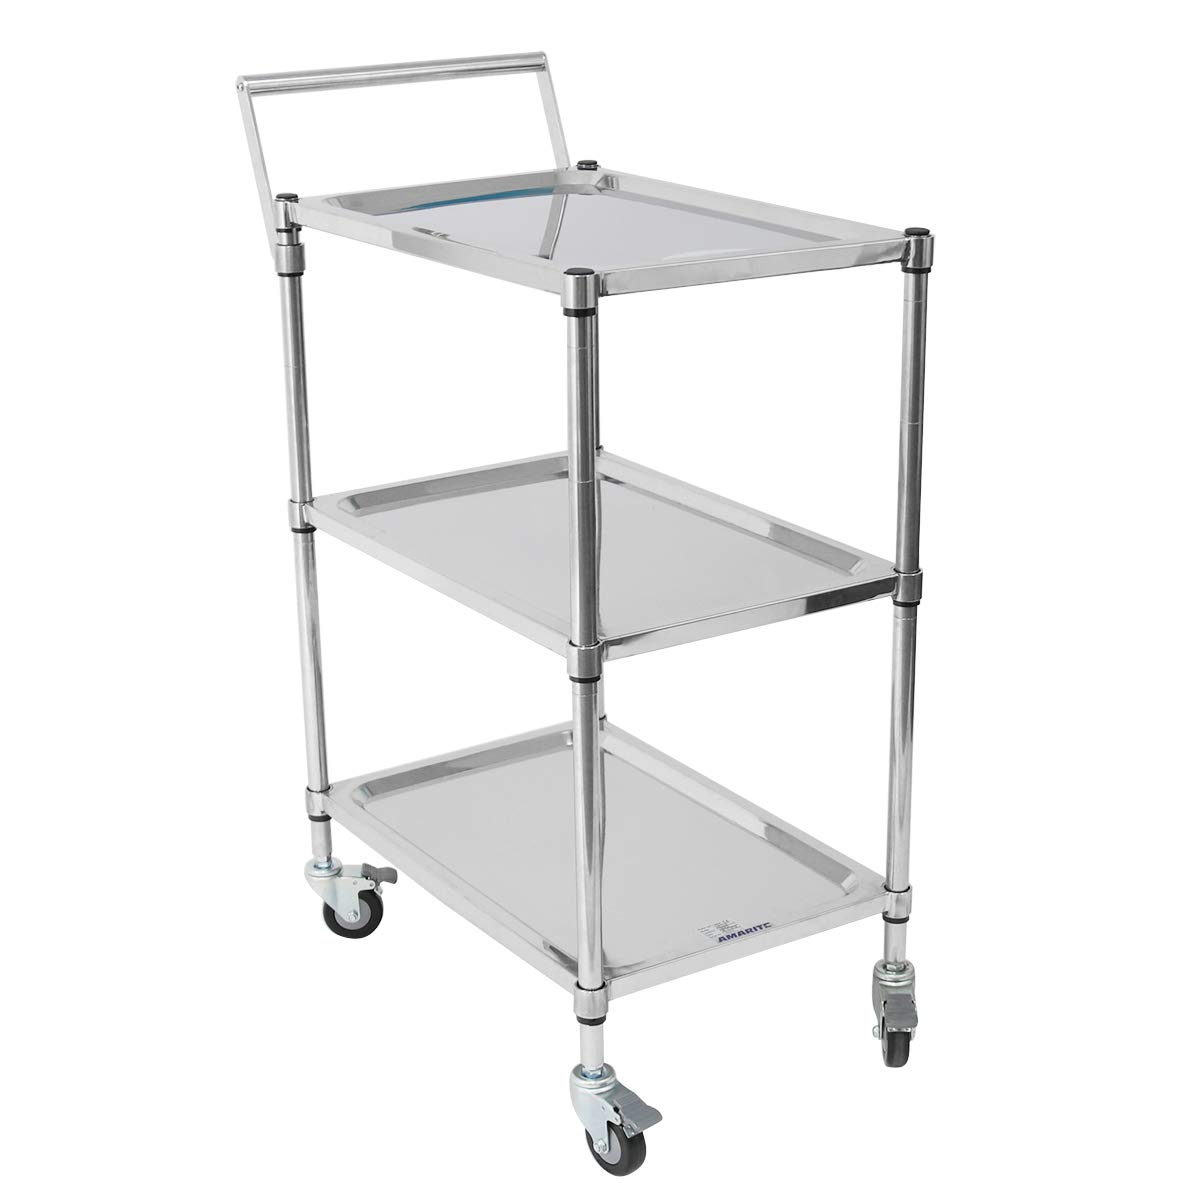 Amarite Stainless Platform Trolley Stainless Cart Grade 304 Stainless Steel 3 Shelves 396lbs Capacity